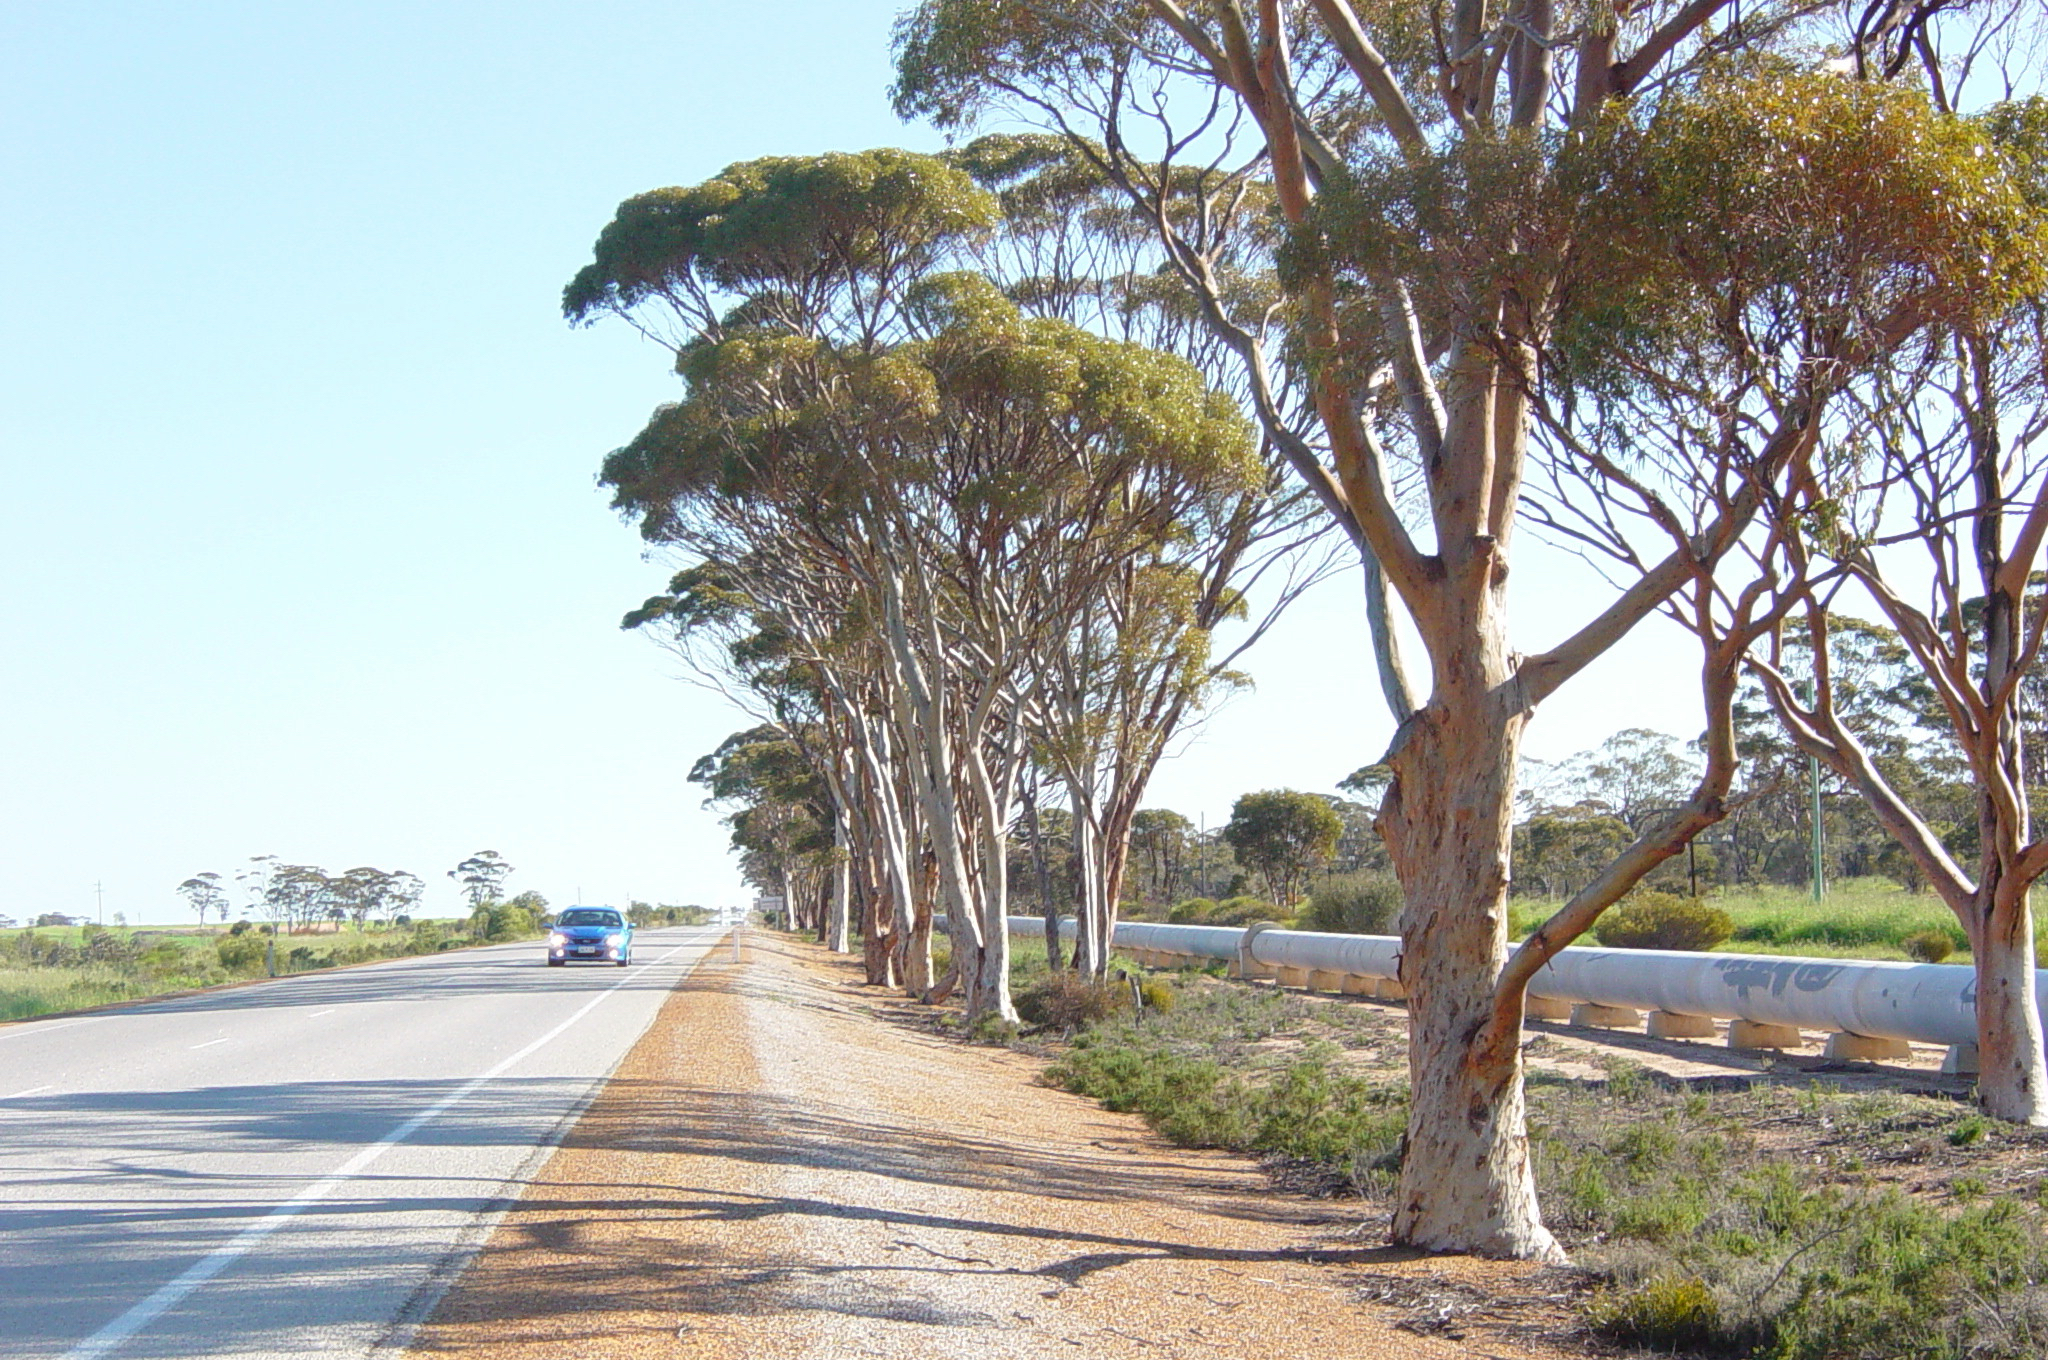 Driving along the pipeline near Southern Cross.